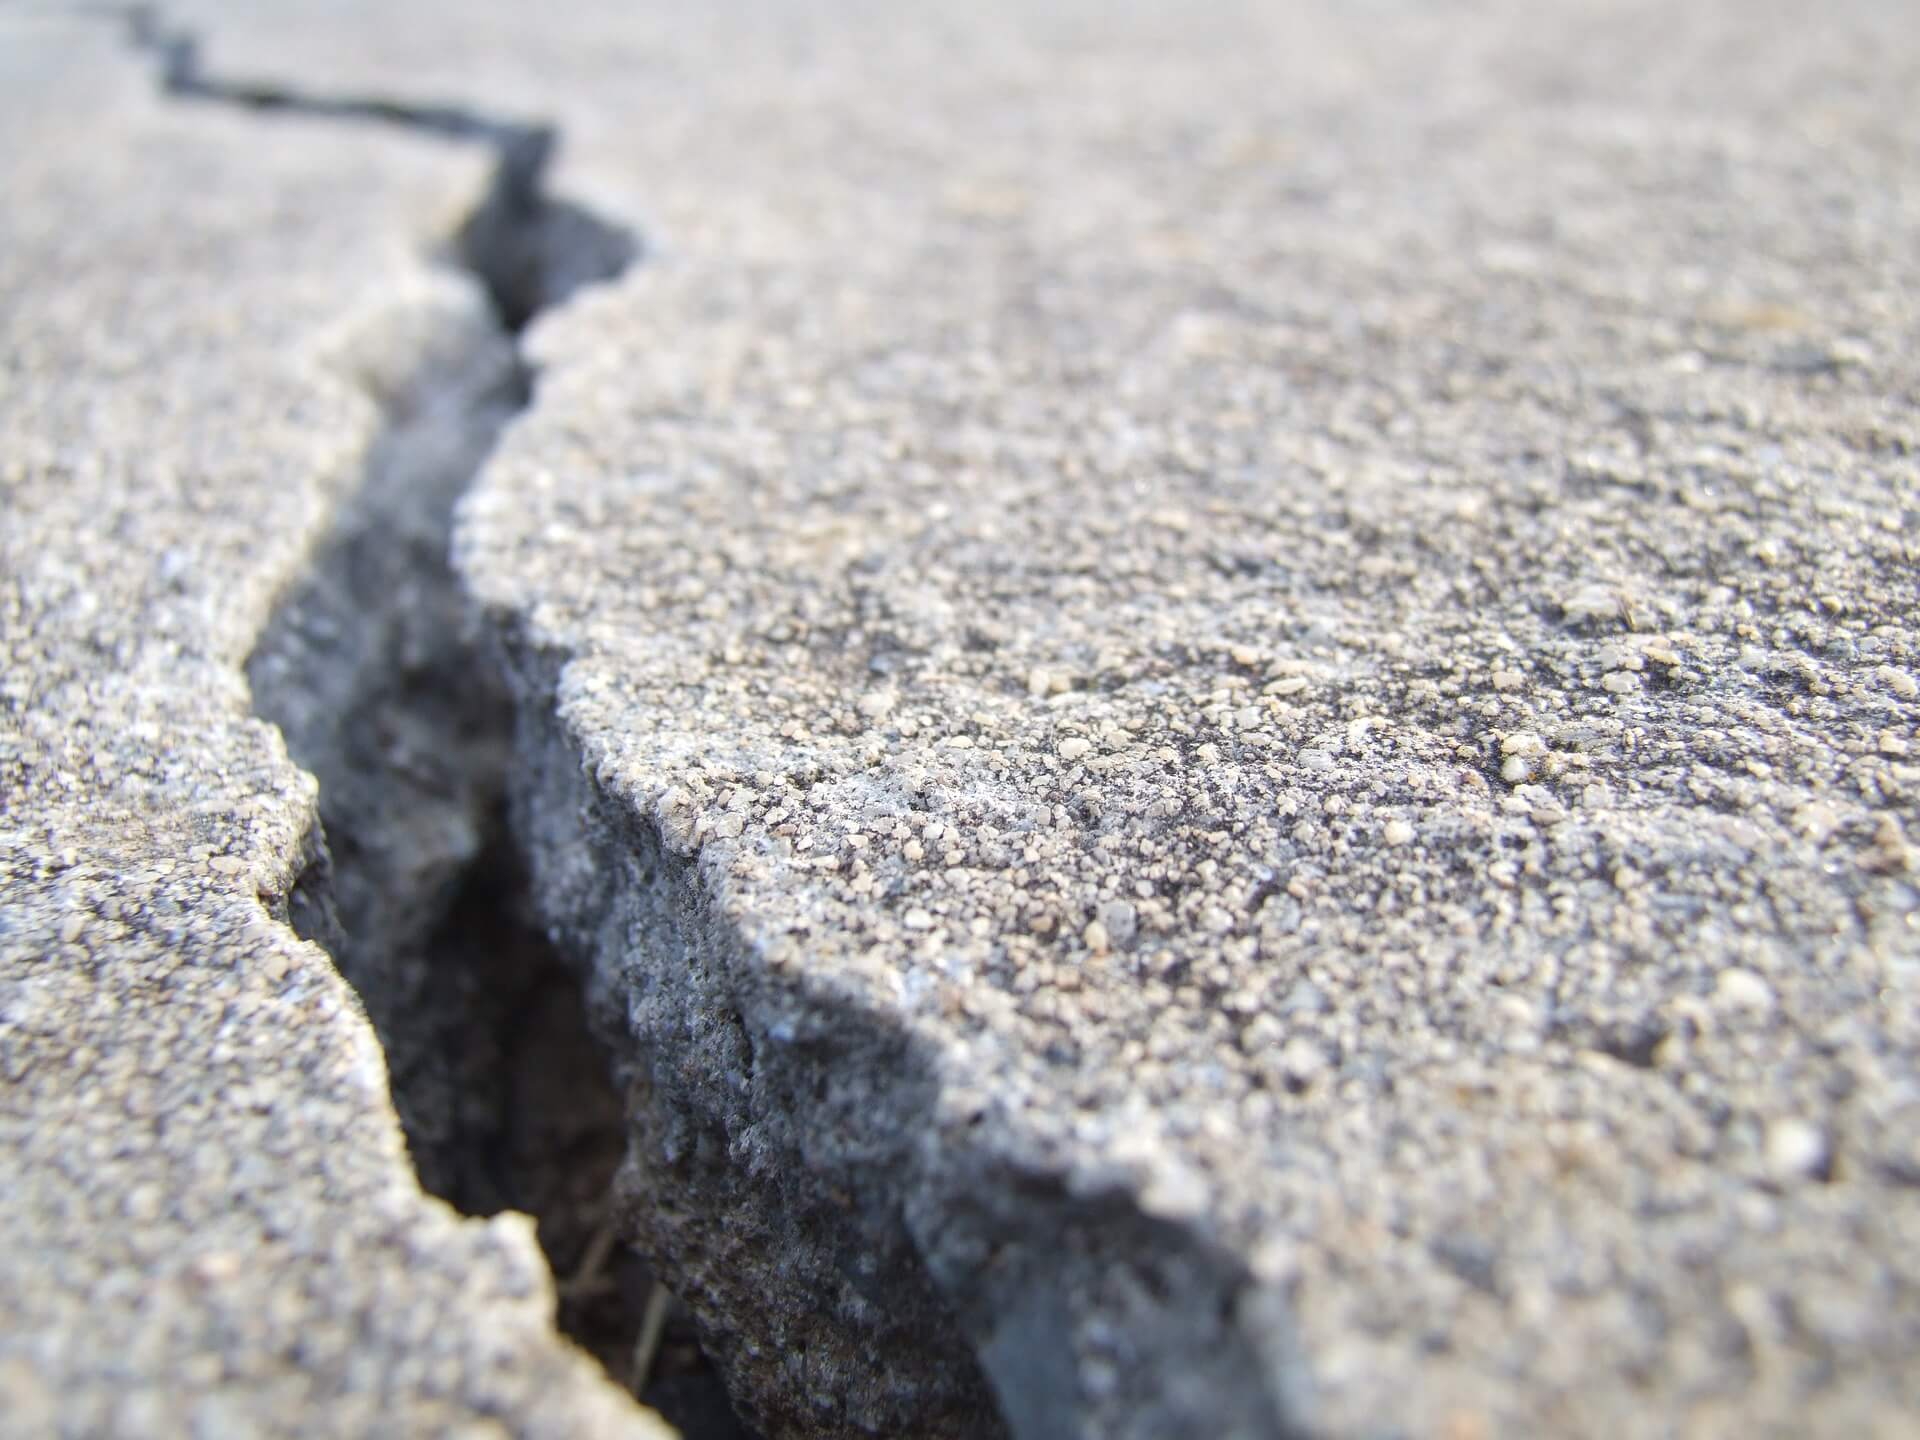 Fixing Concrete Cracks For Your Driveways, Patios And Other Concrete Surfaces In A Professional Way!